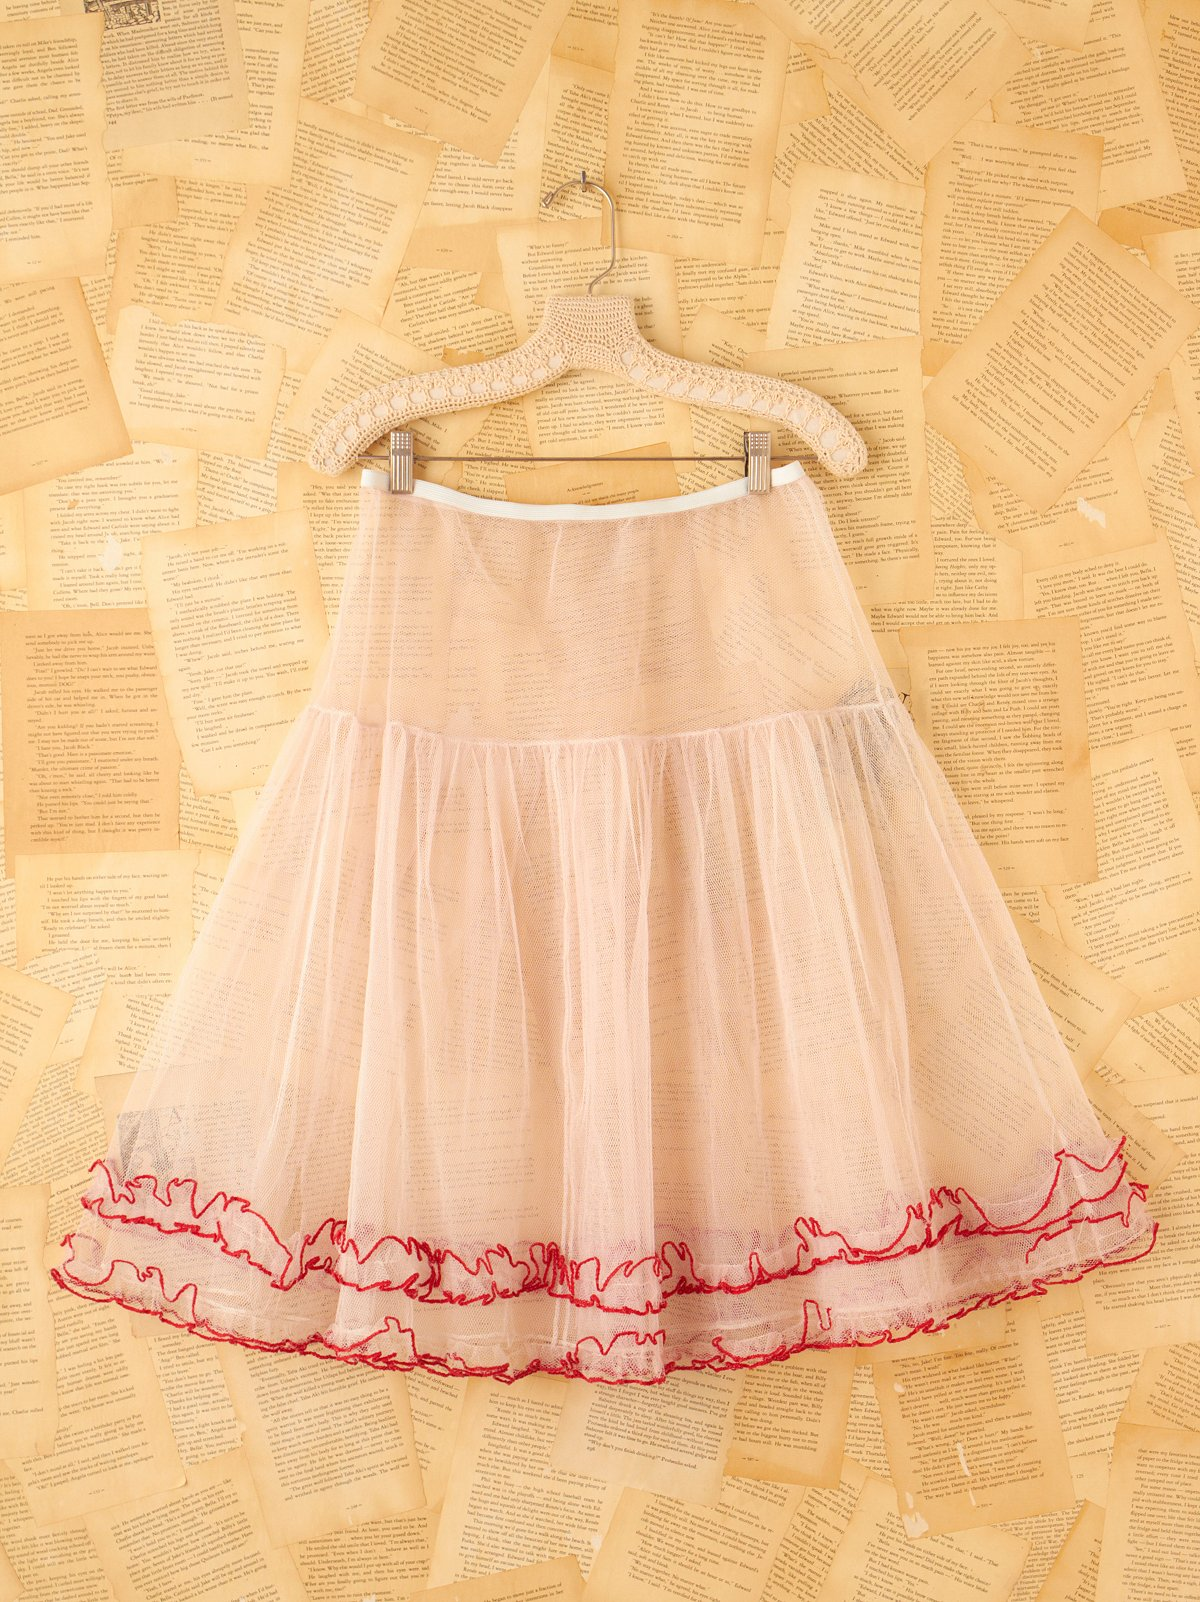 Vintage Pink Crinoline Skirt with Red Trim